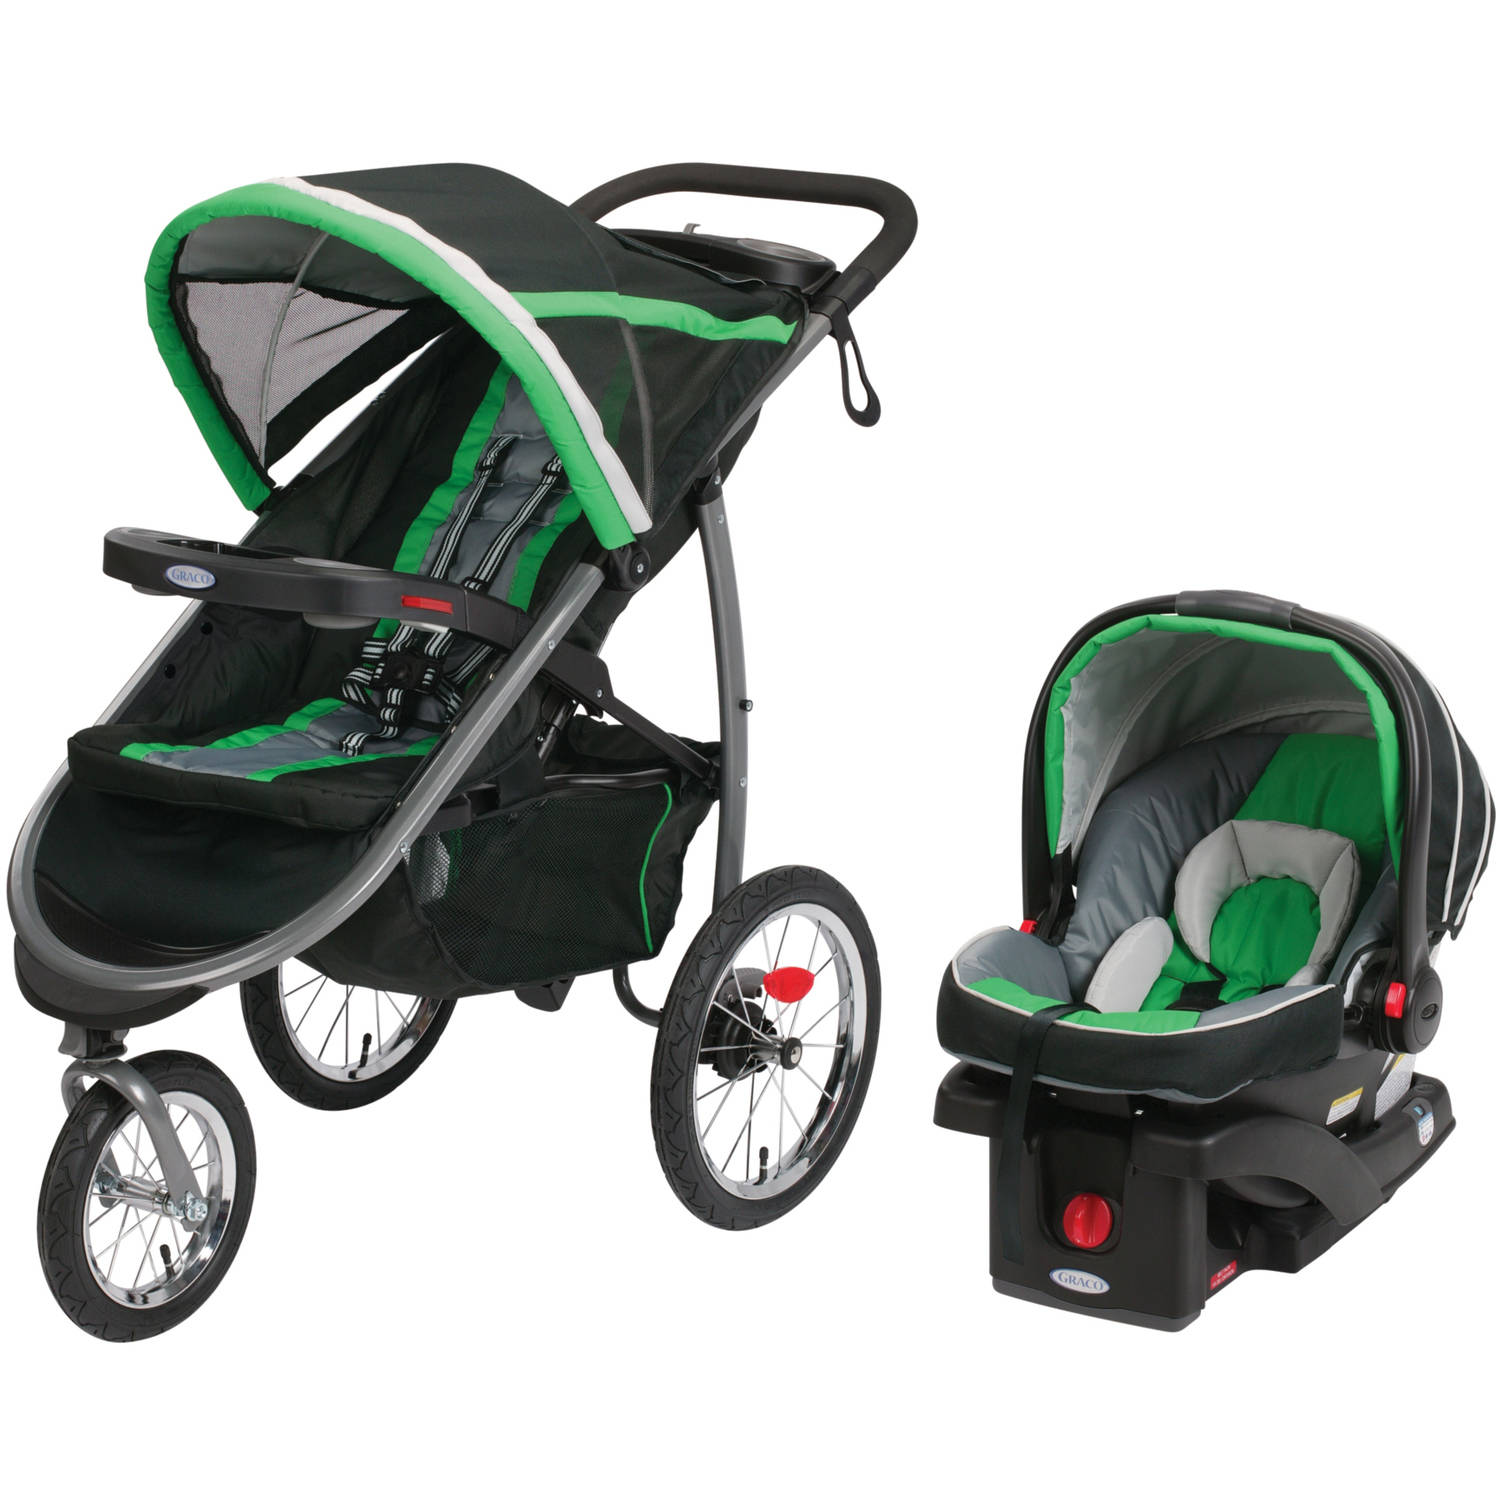 Graco FastAction Fold Jogger Click Connect Travel System Jogging Stroller, Fern